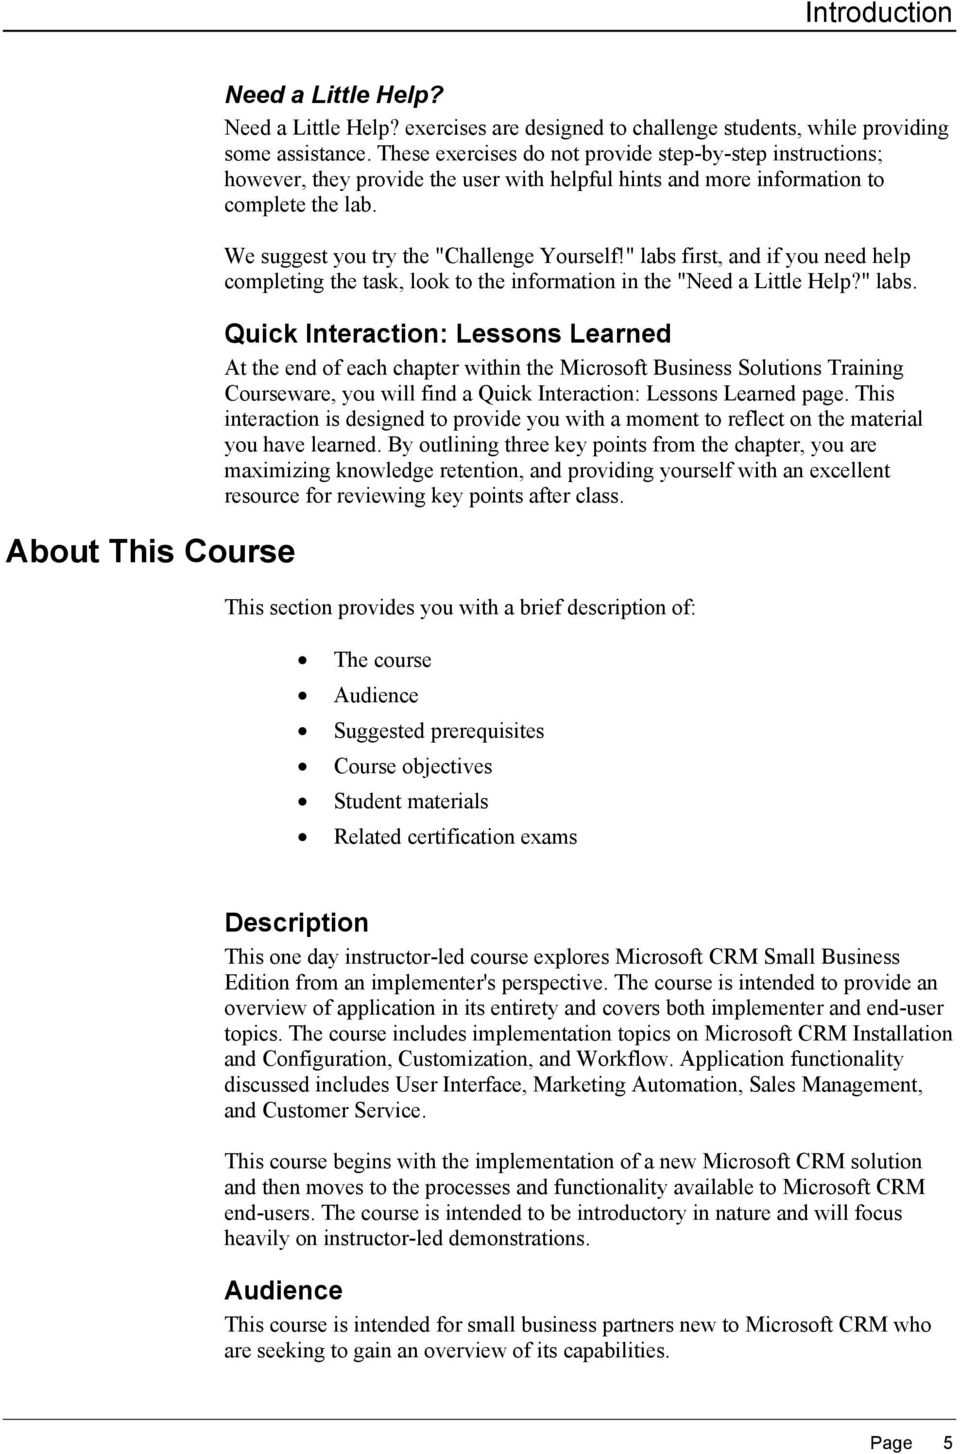 """ labs first, and if you need help completing the task, look to the information in the ""Need a Little Help?"" labs. Quick Interaction: Lessons Learned At the end of each chapter within the Microsoft Business Solutions Training Courseware, you will find a Quick Interaction: Lessons Learned page."